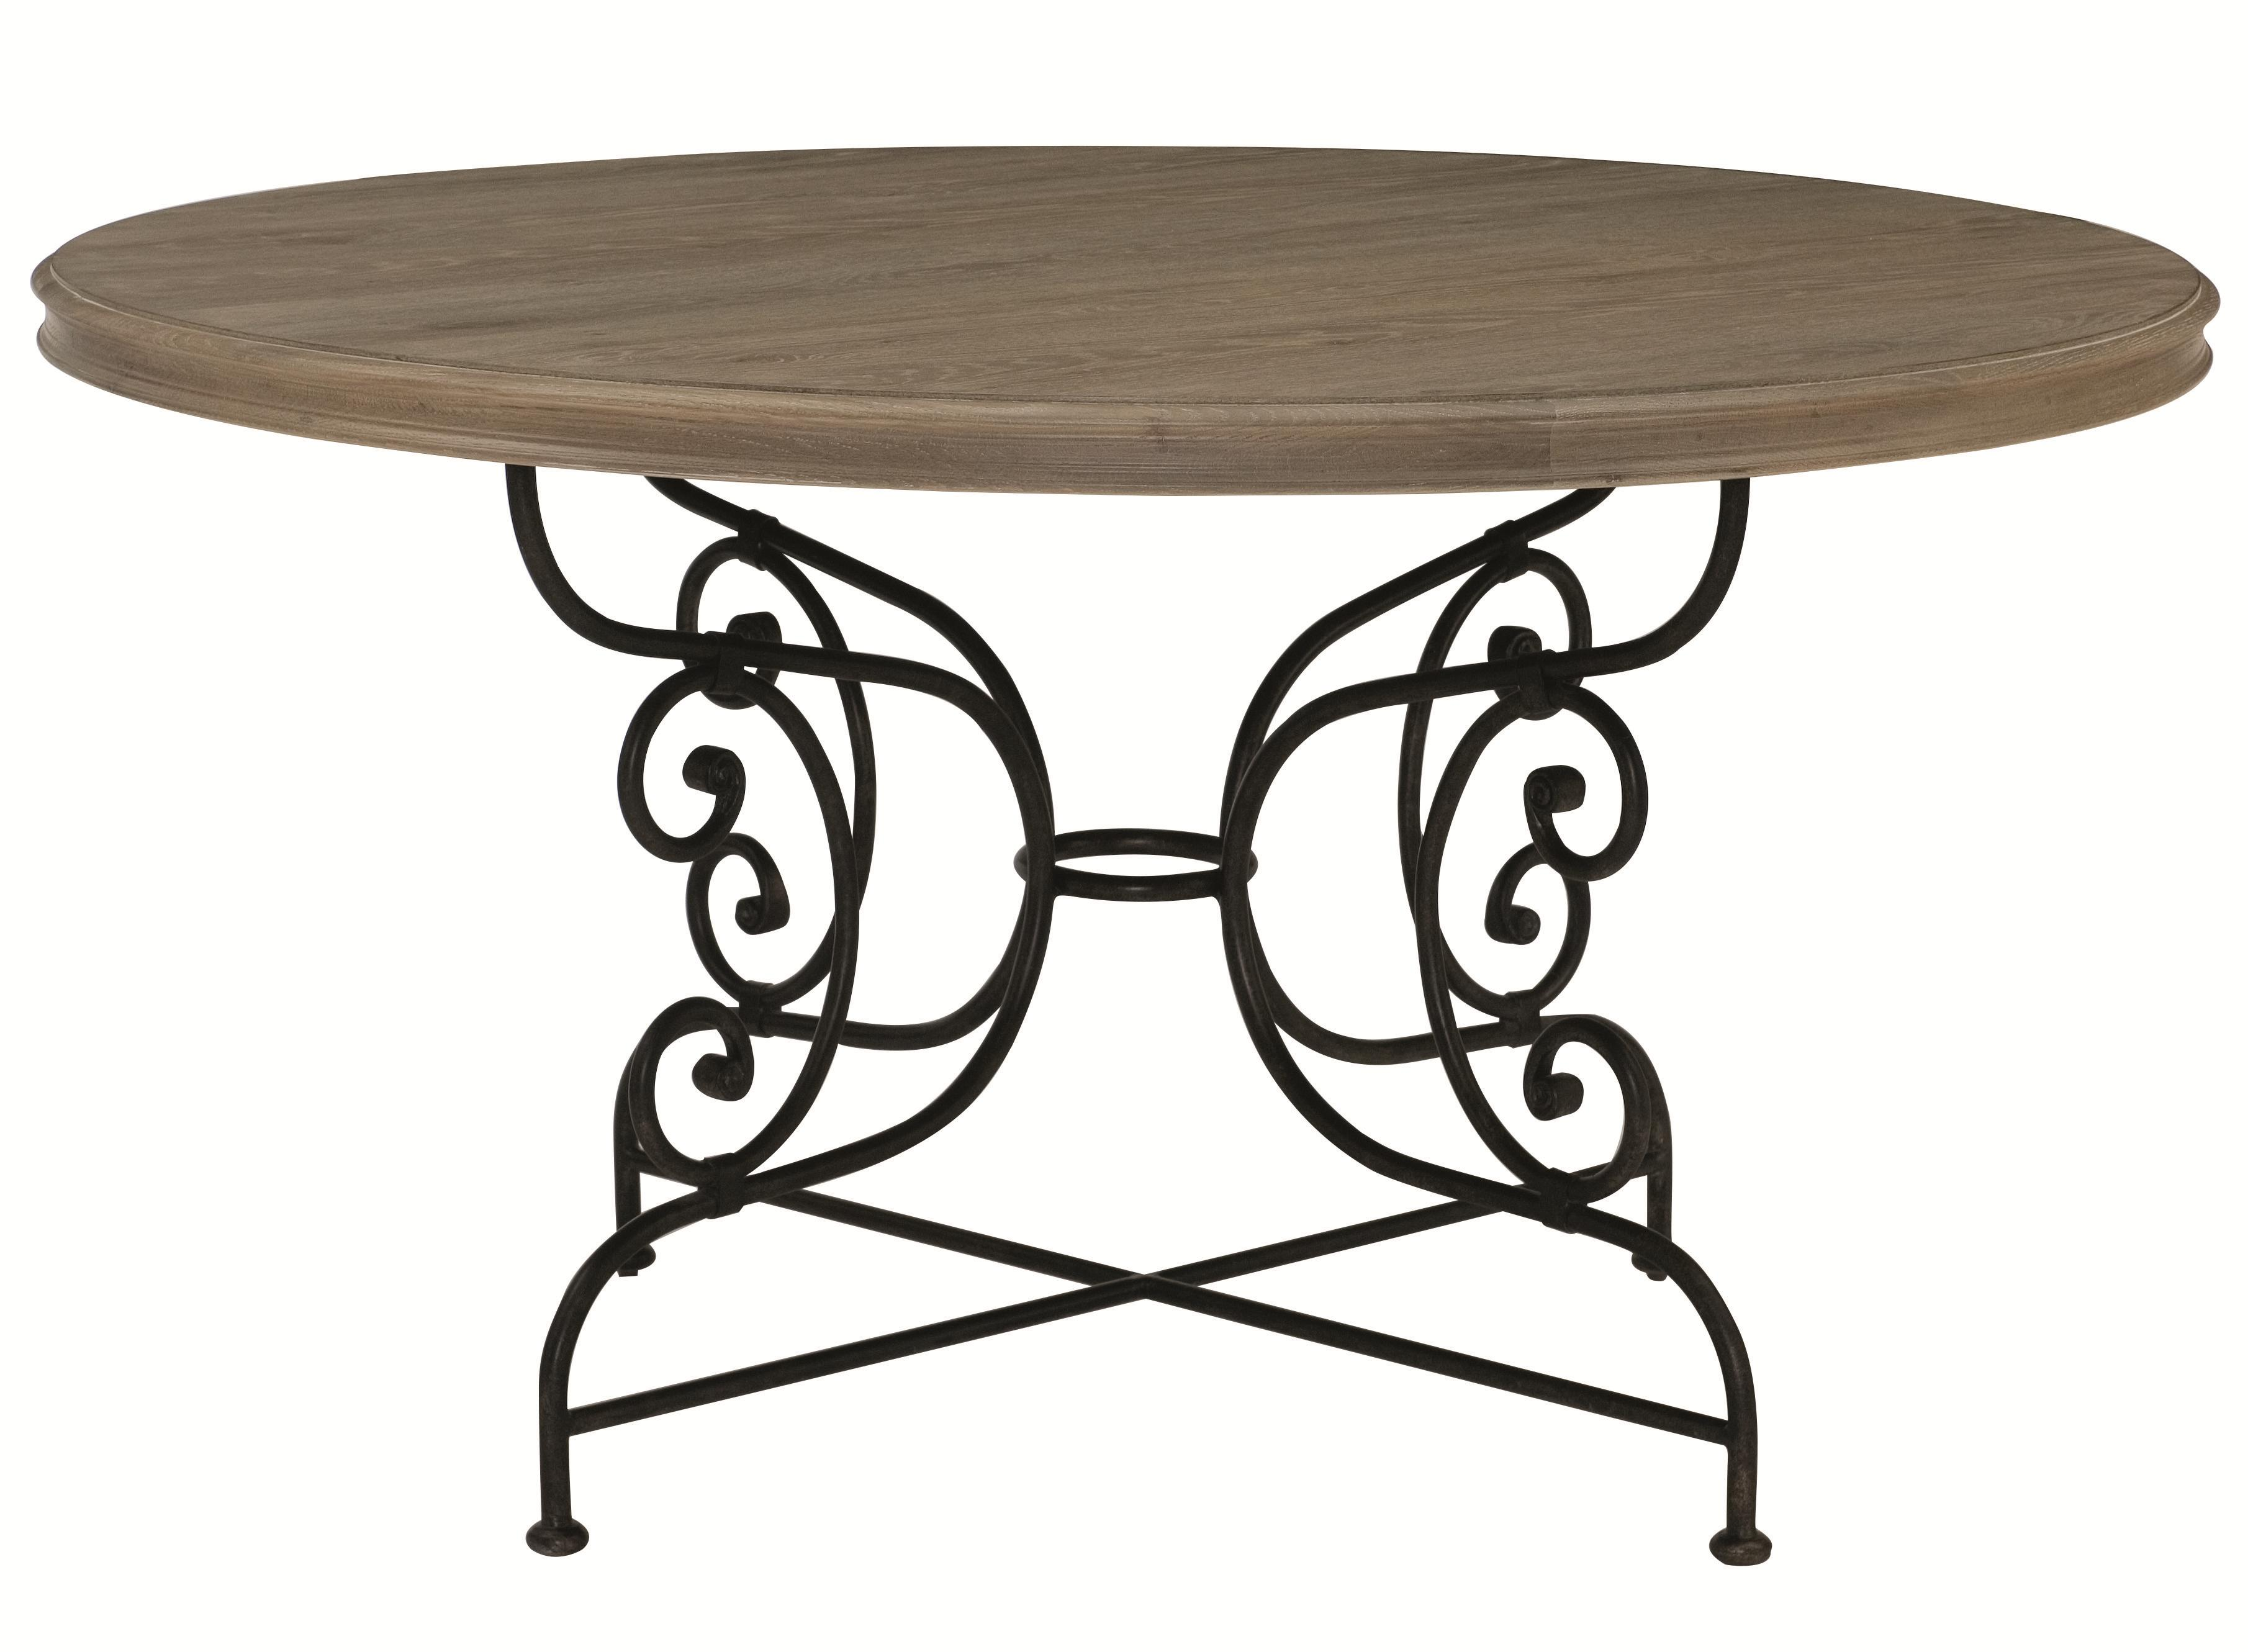 Auberge Round Dining Table with Metal Base by Bernhardt at Belfort Furniture